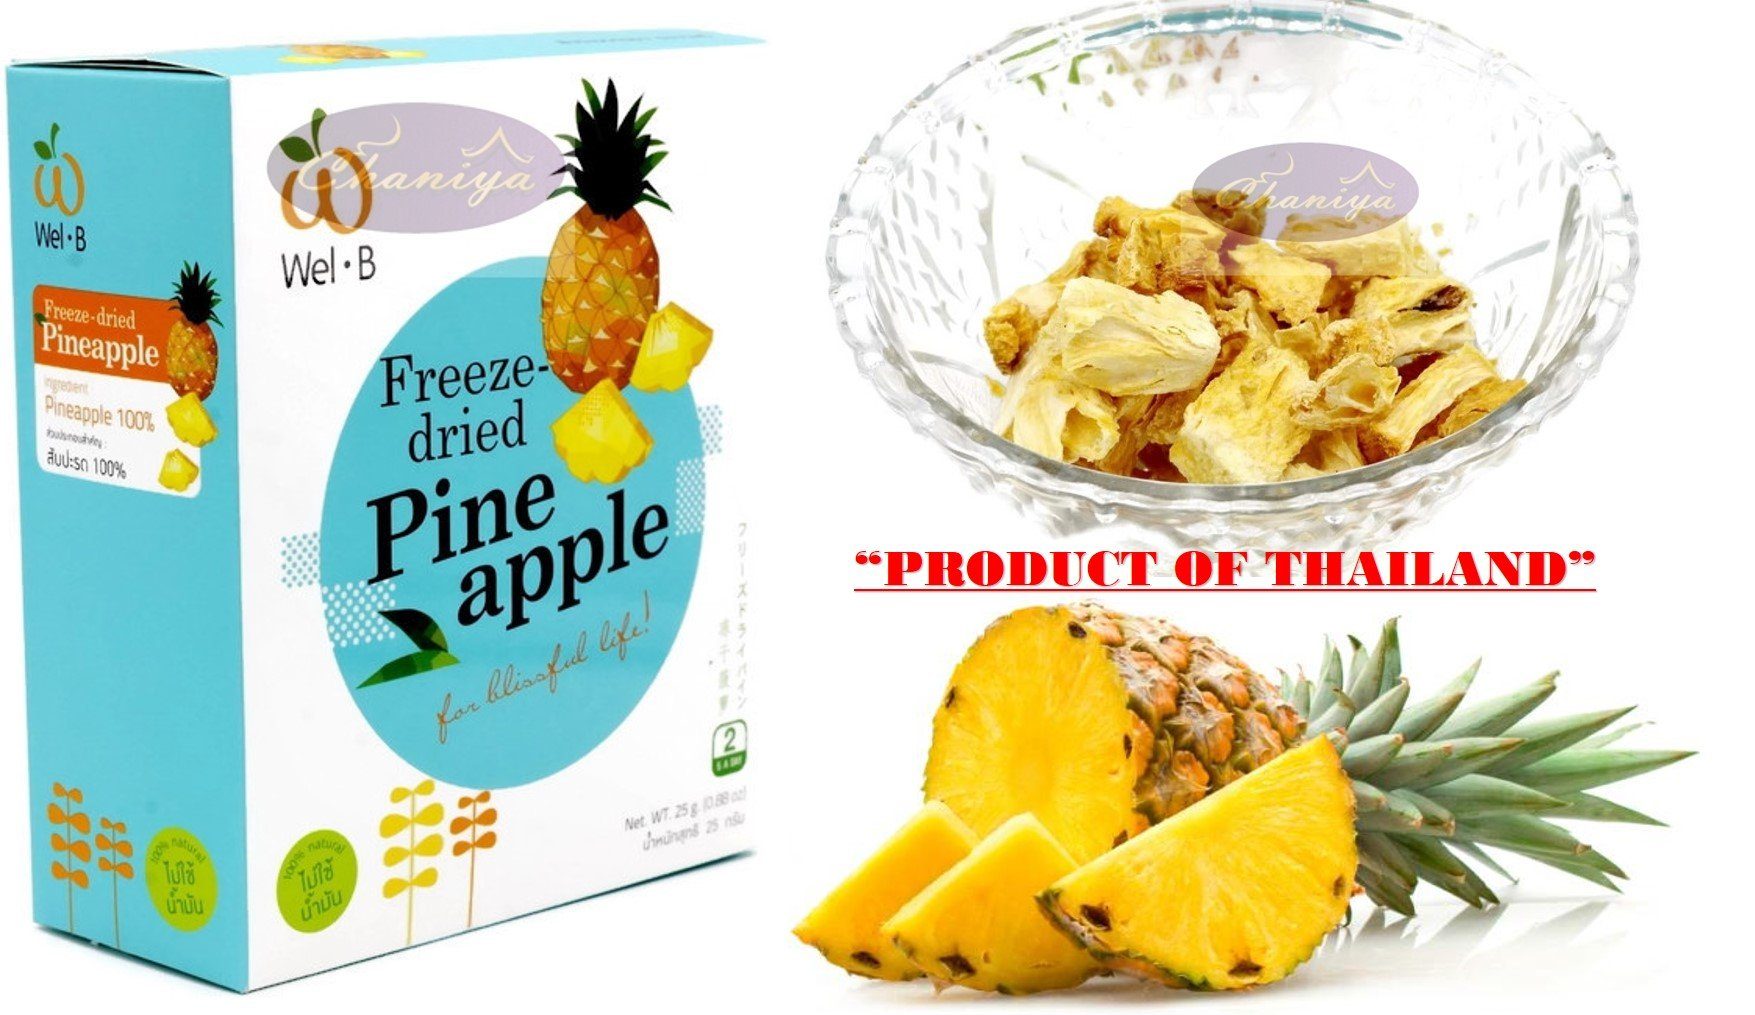 Crispy Freeze dried Fruit Pineapple Special and Unique Fruit Healthy Snack 100% all Natural Oil-Free 1 Box 25 g. (0.88 Oz)